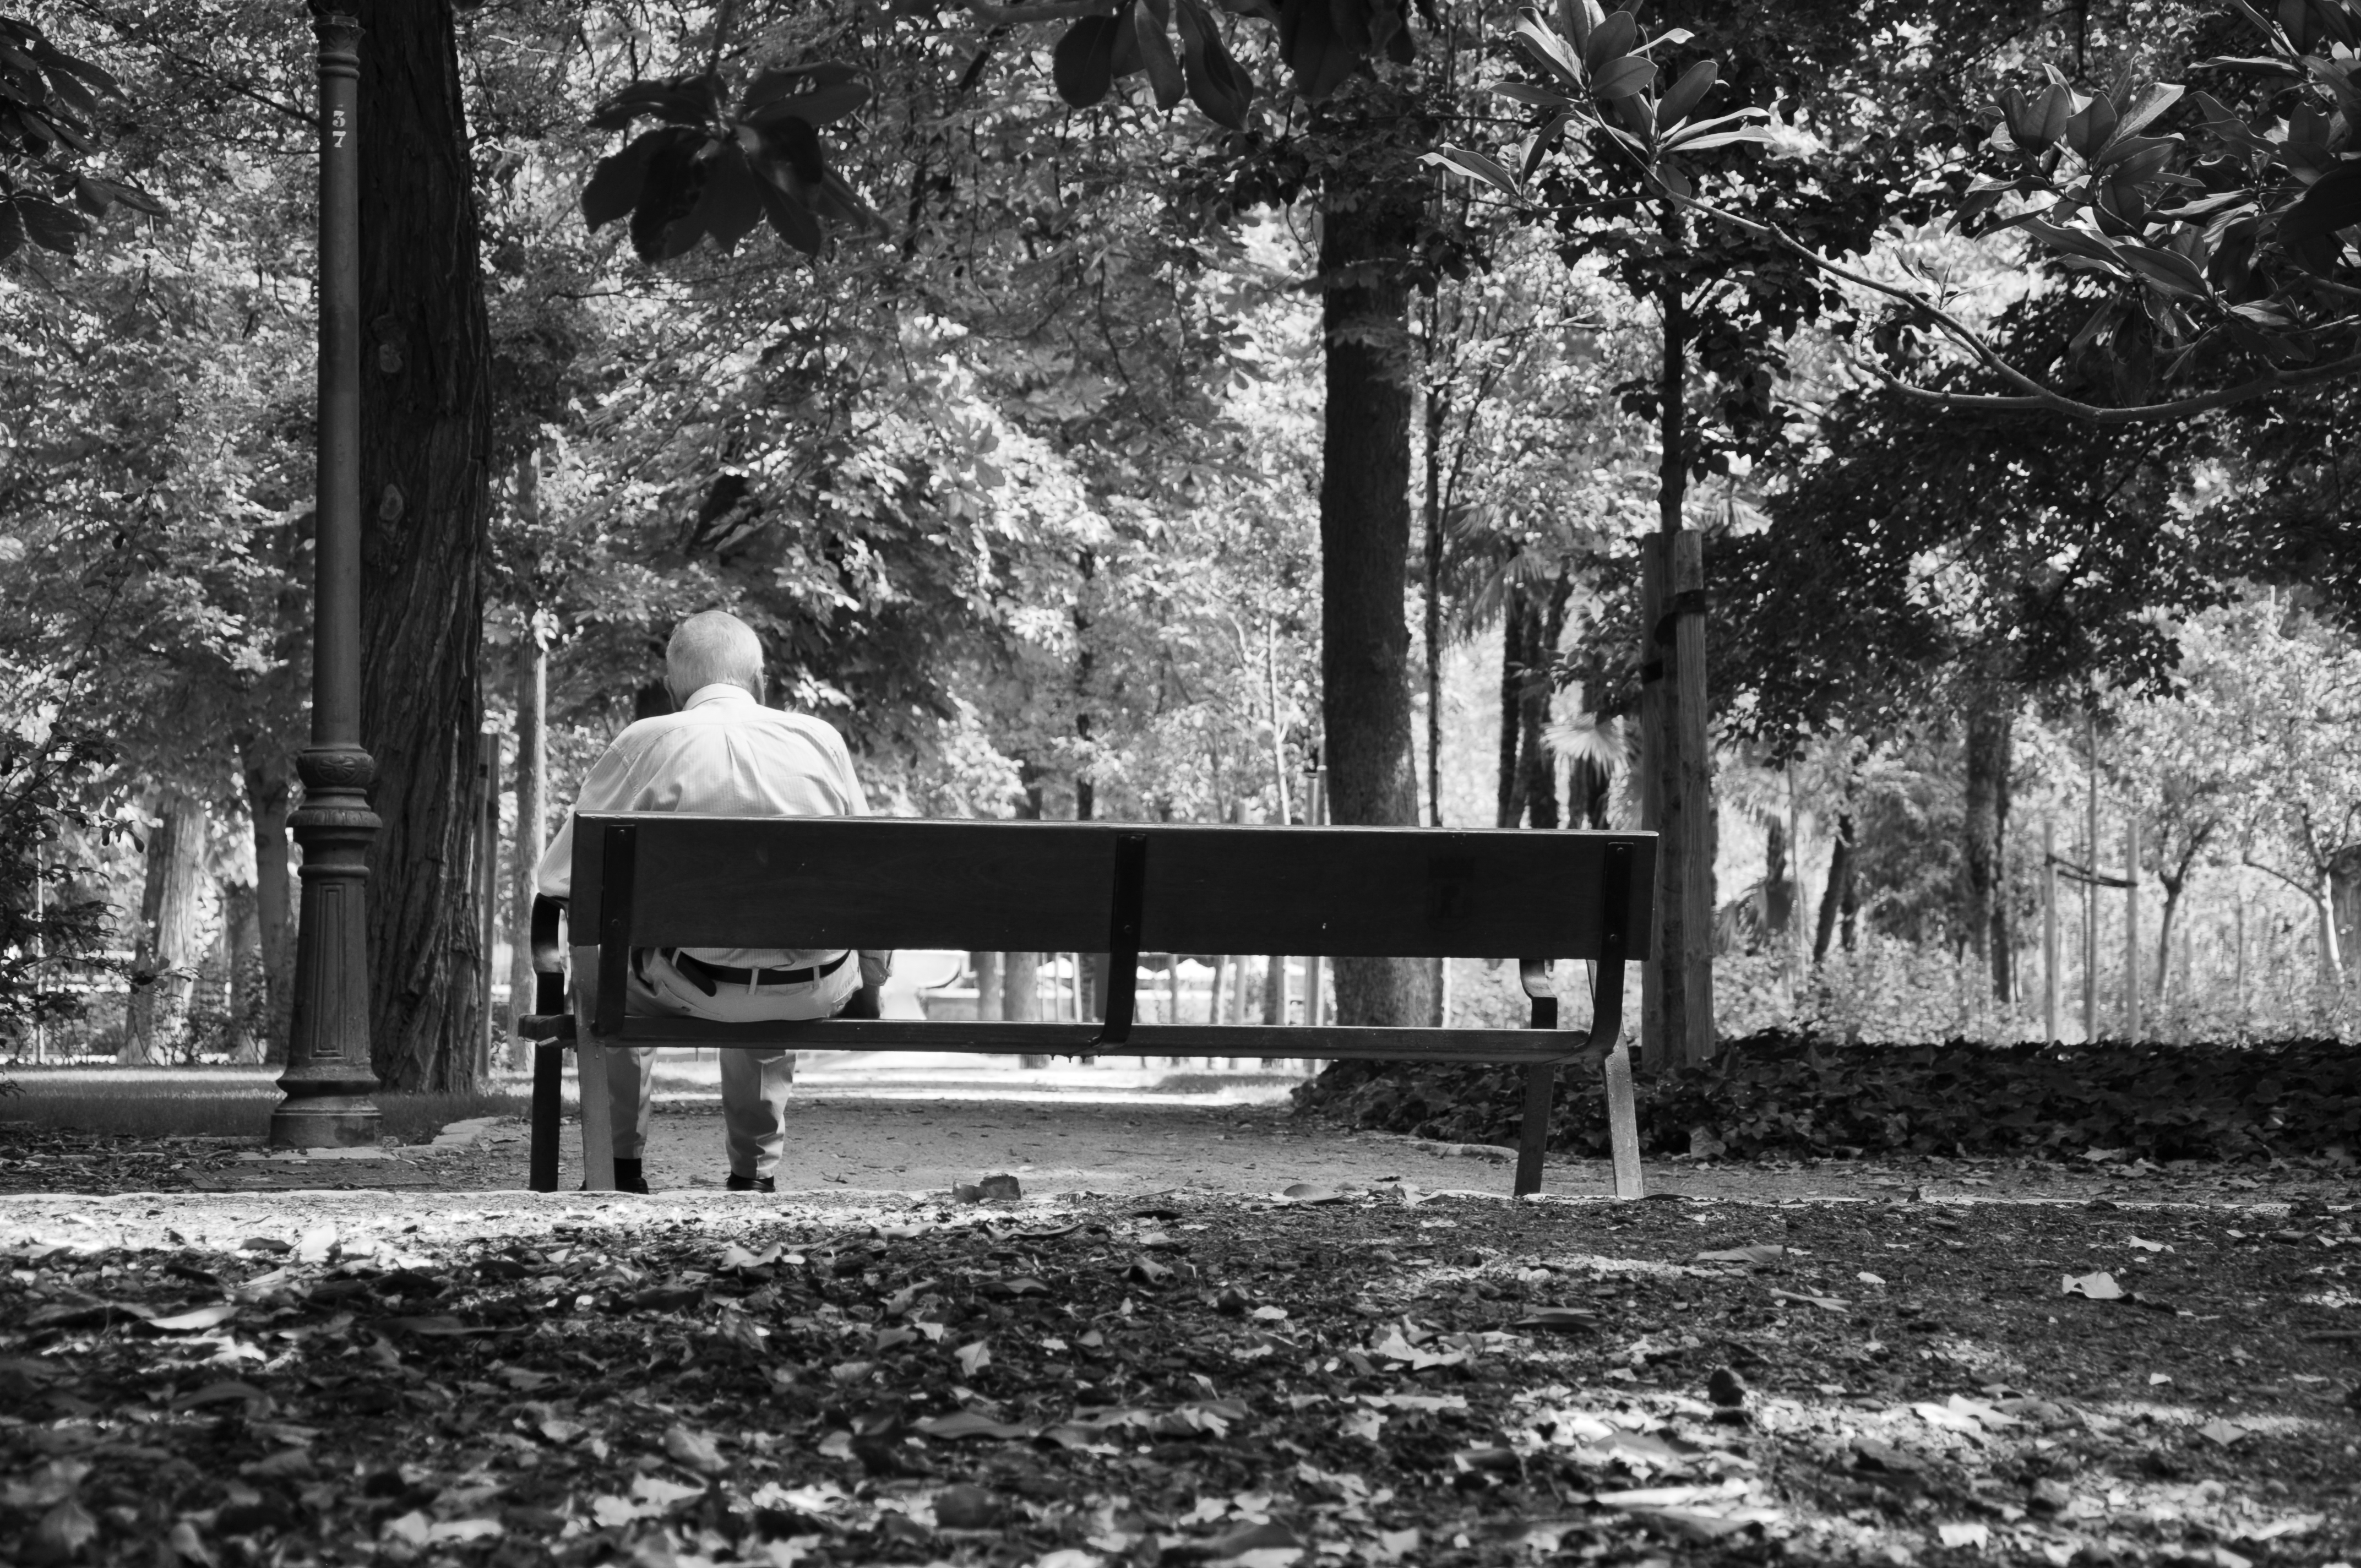 man sat alone in park